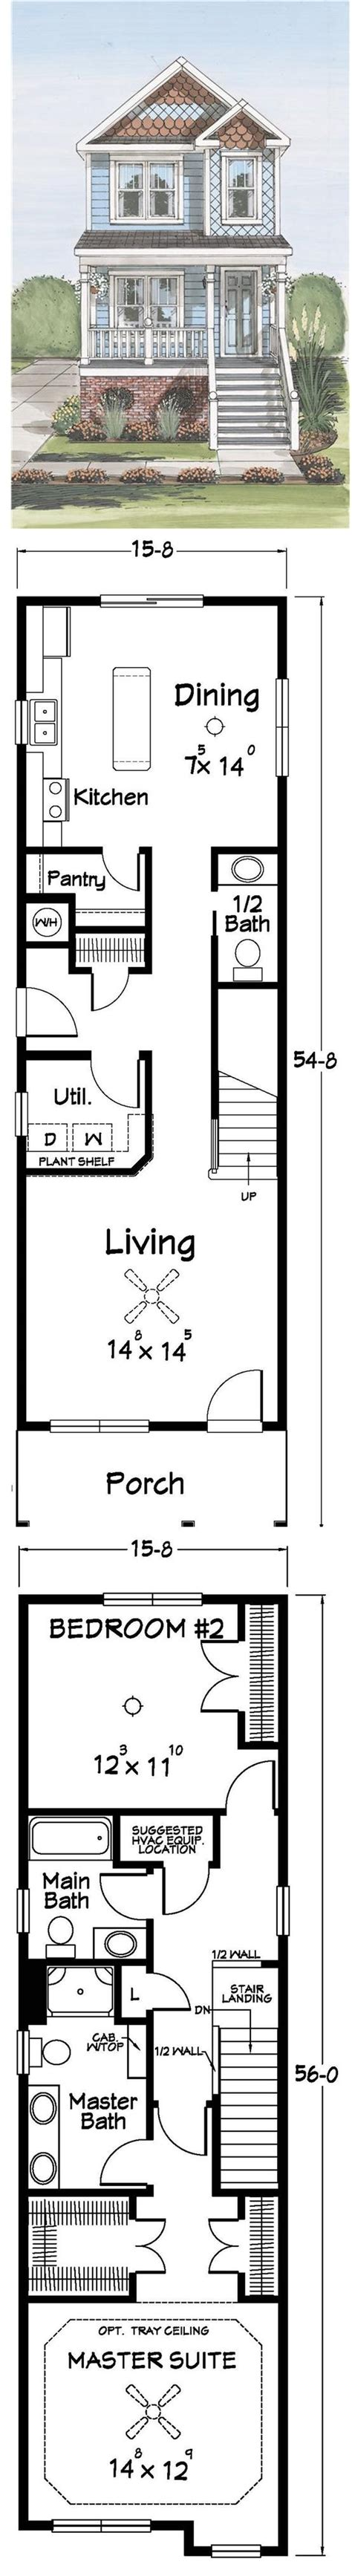 two story house plans for narrow lots best 25 narrow house plans ideas on pinterest narrow lot house plans narrow house